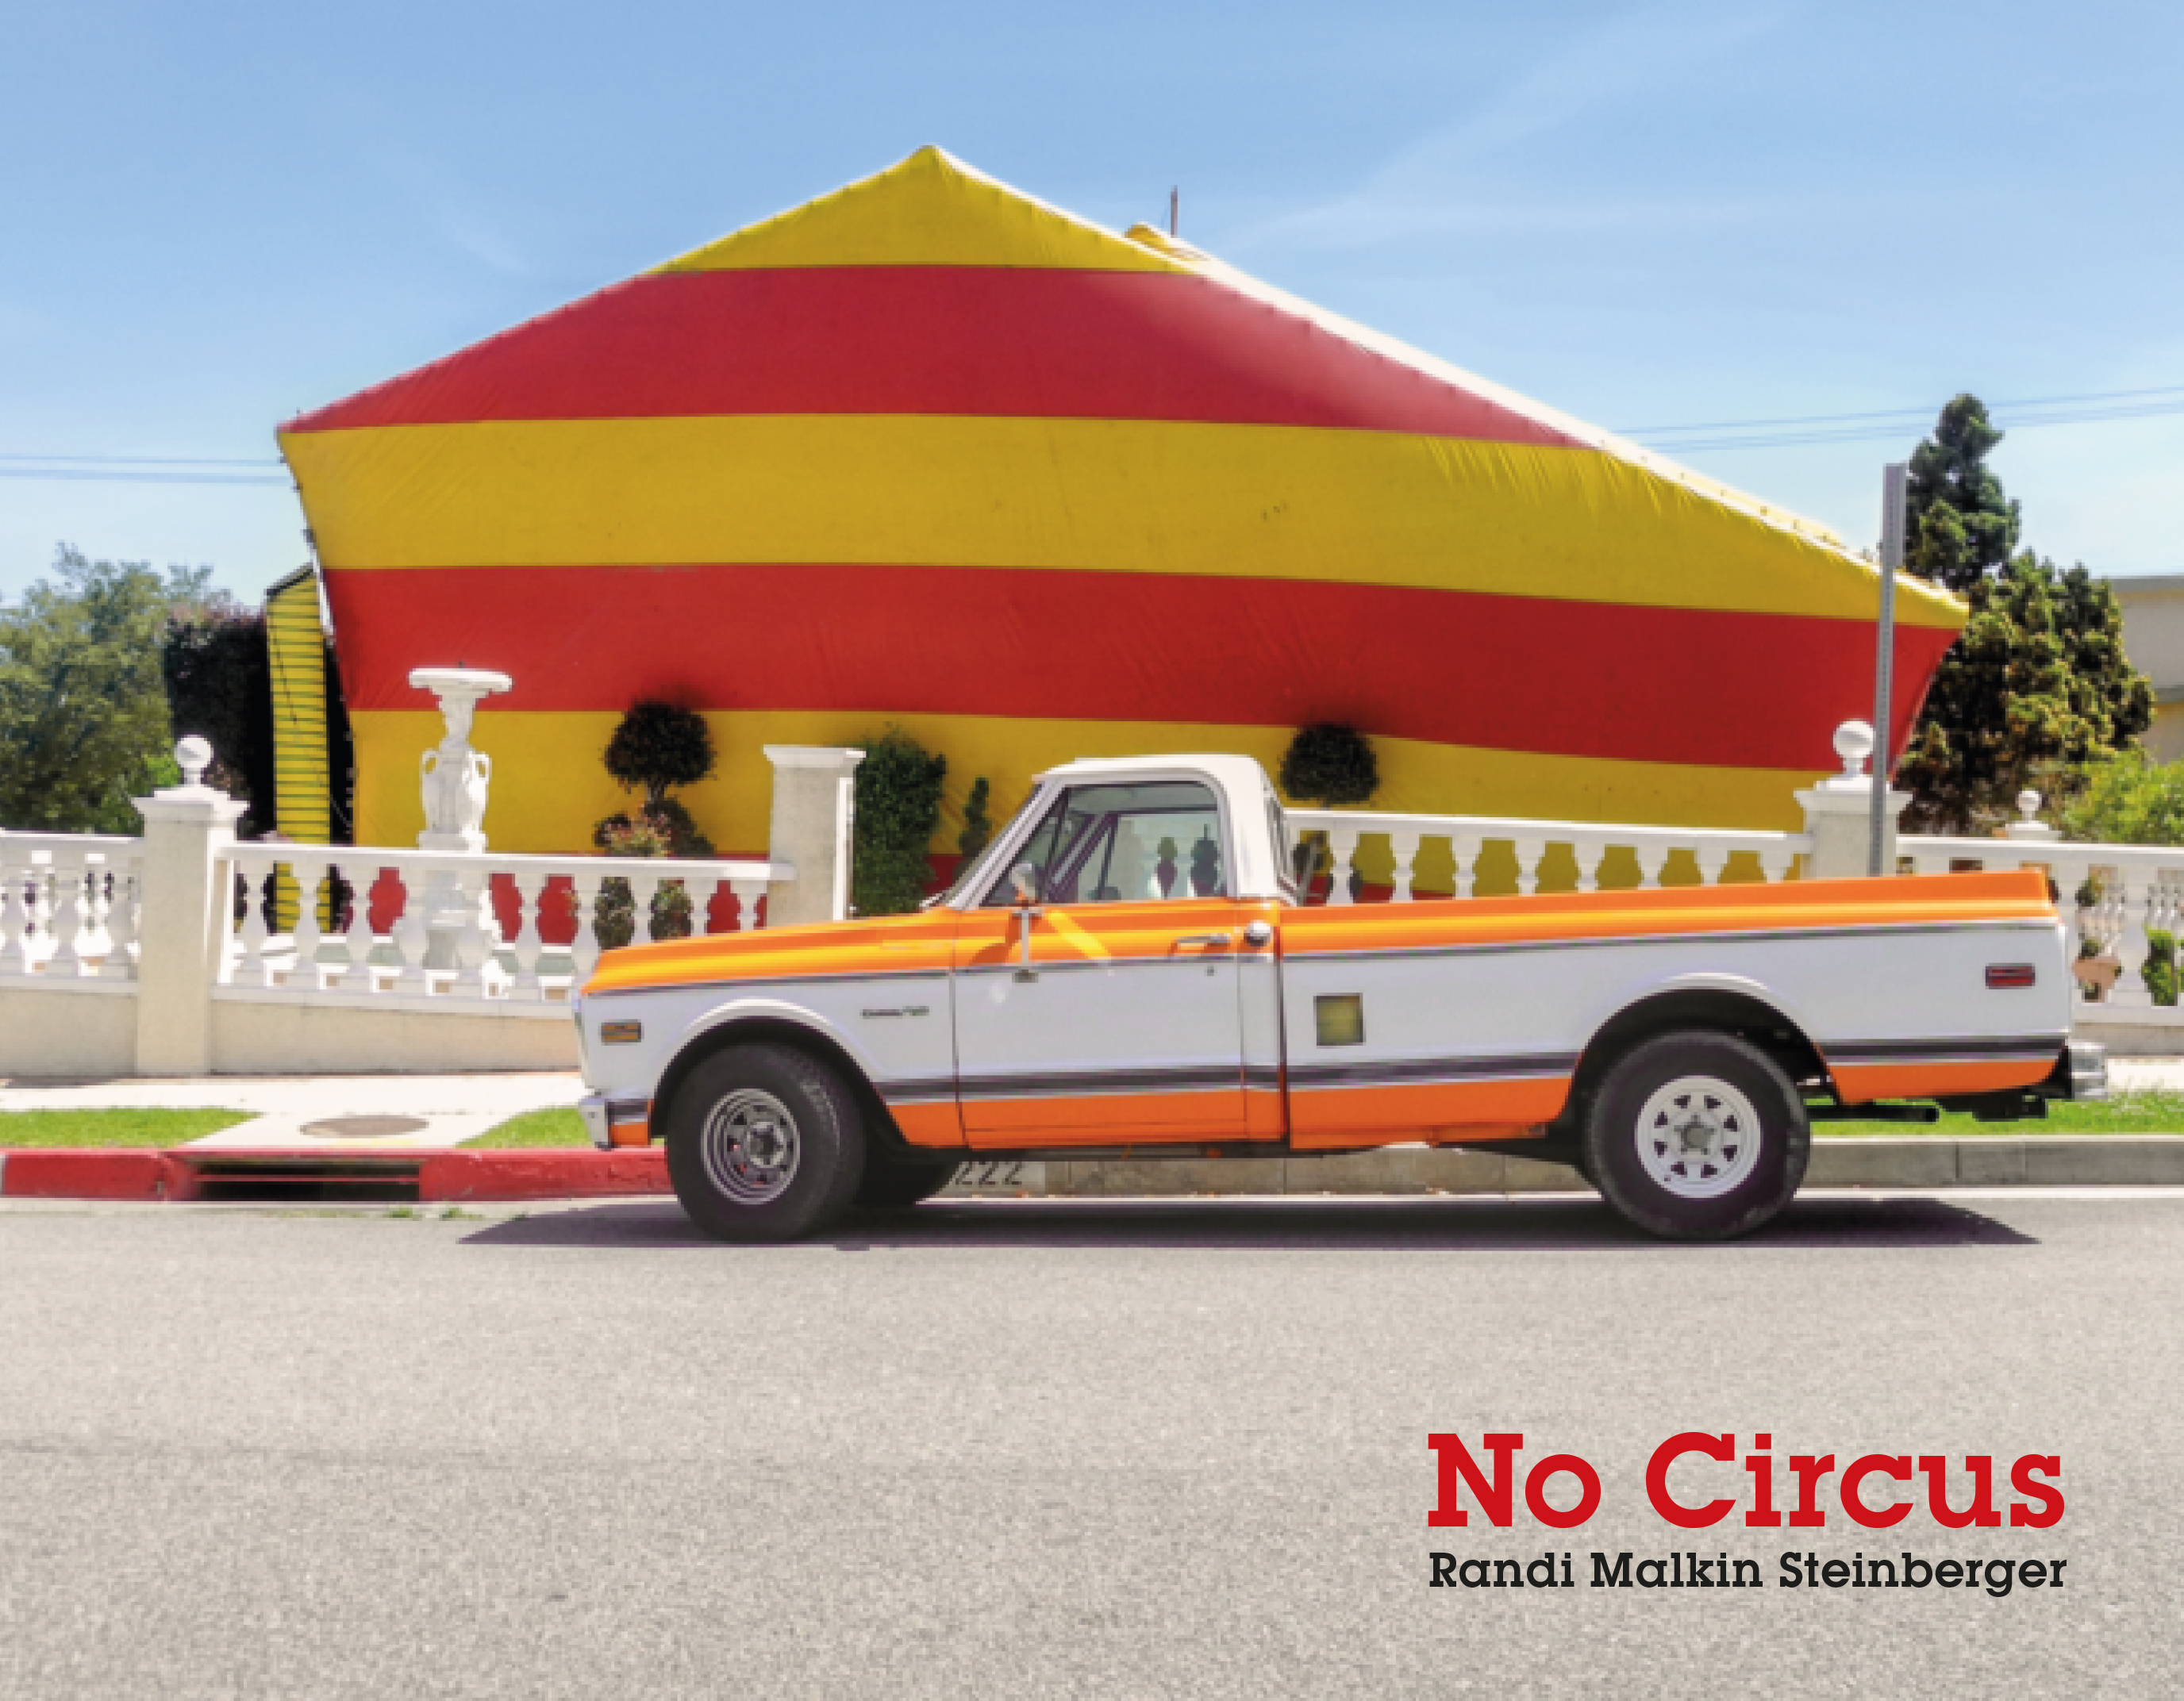 BOOK REVIEW: No Circus, Randi Malkin Steinberger